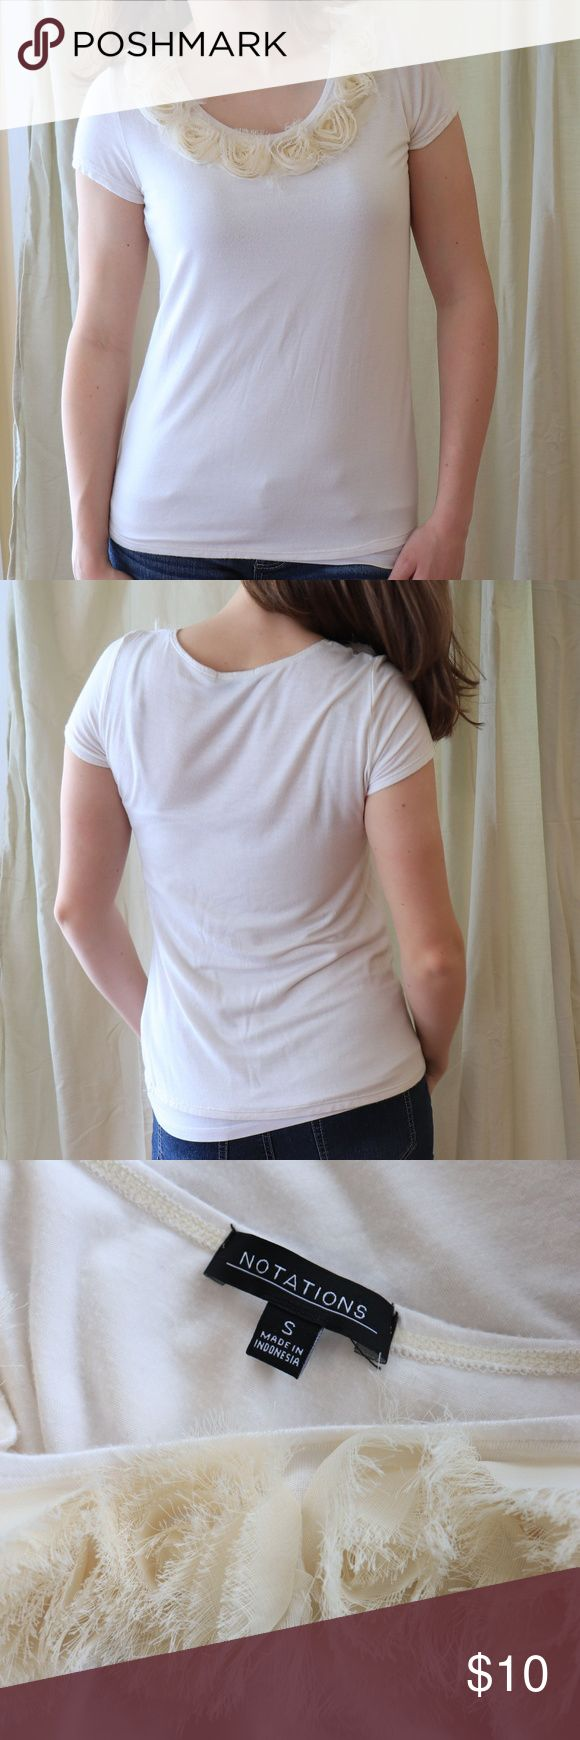 "Notations White Bouse Simple off-white blouse with (intentionally) fraying sheer rose accents. Scoop neck. Size small. In good condition. No flaws except a small amount of pilling. I'm 5'7"", approx. 135 lbs. and it fits me well. Notations Tops Blouses"